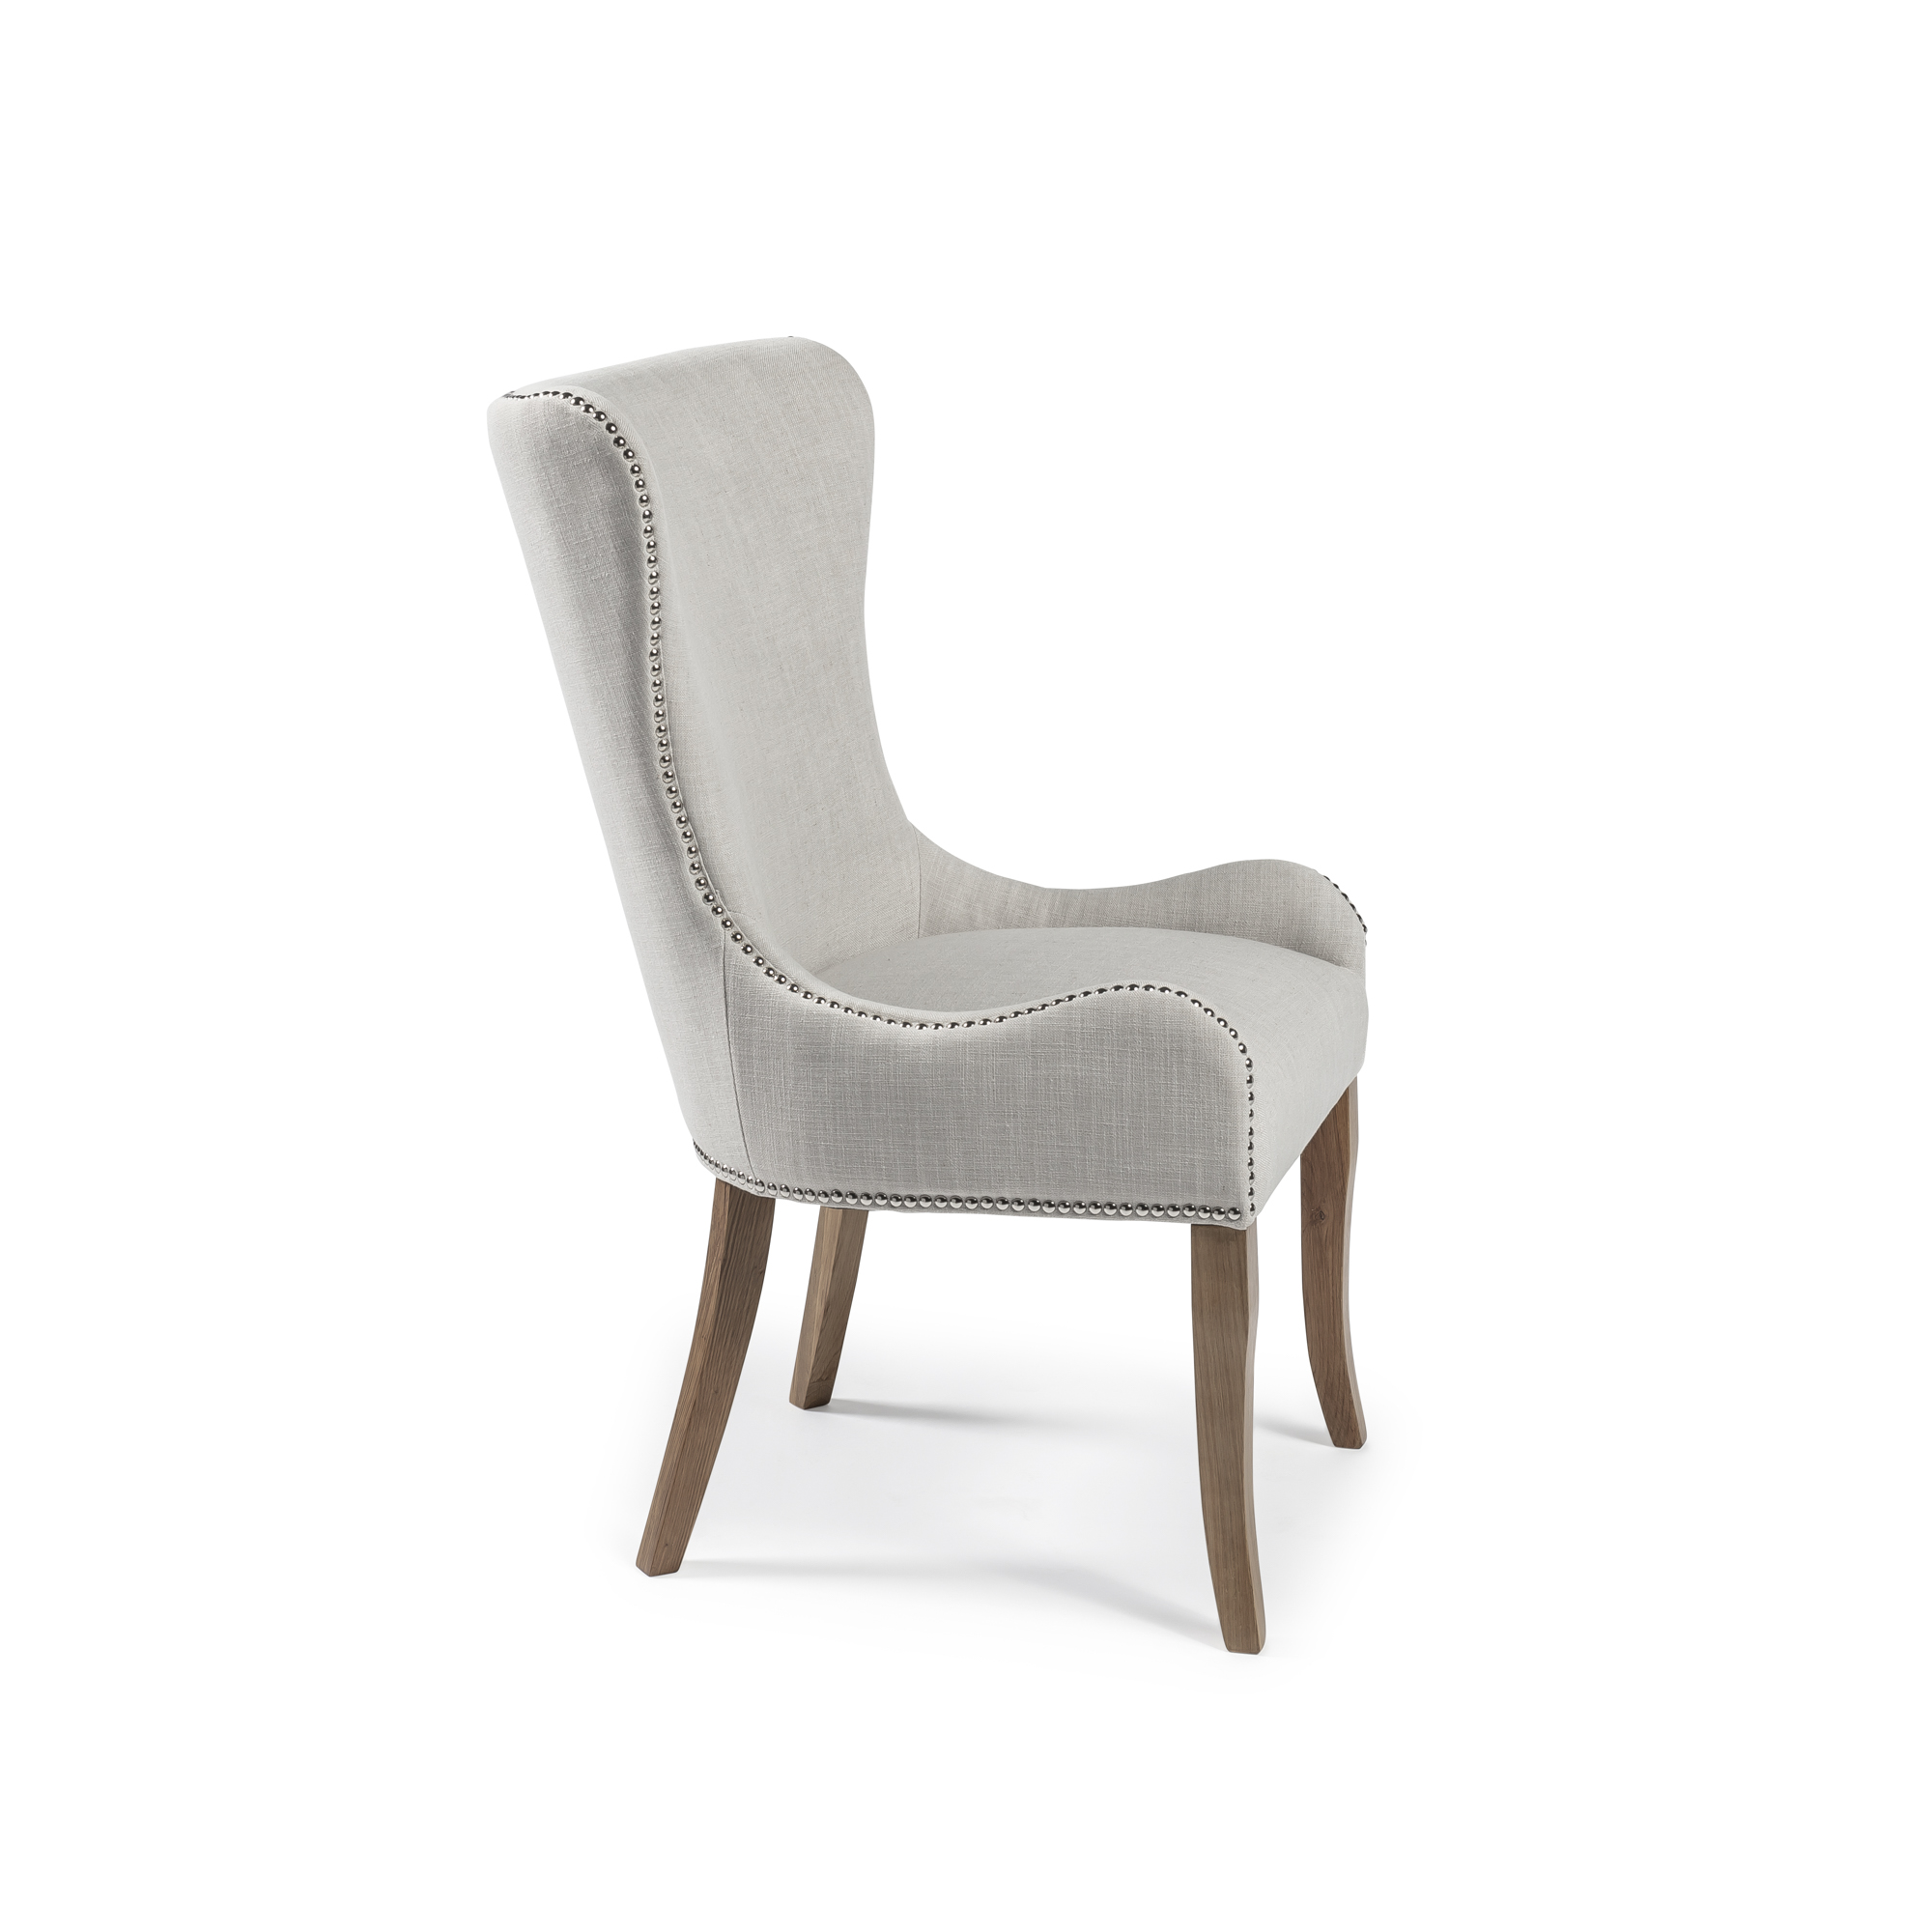 Edinburgh Linen Dining Chairs with Oak Legs (Set of 2)